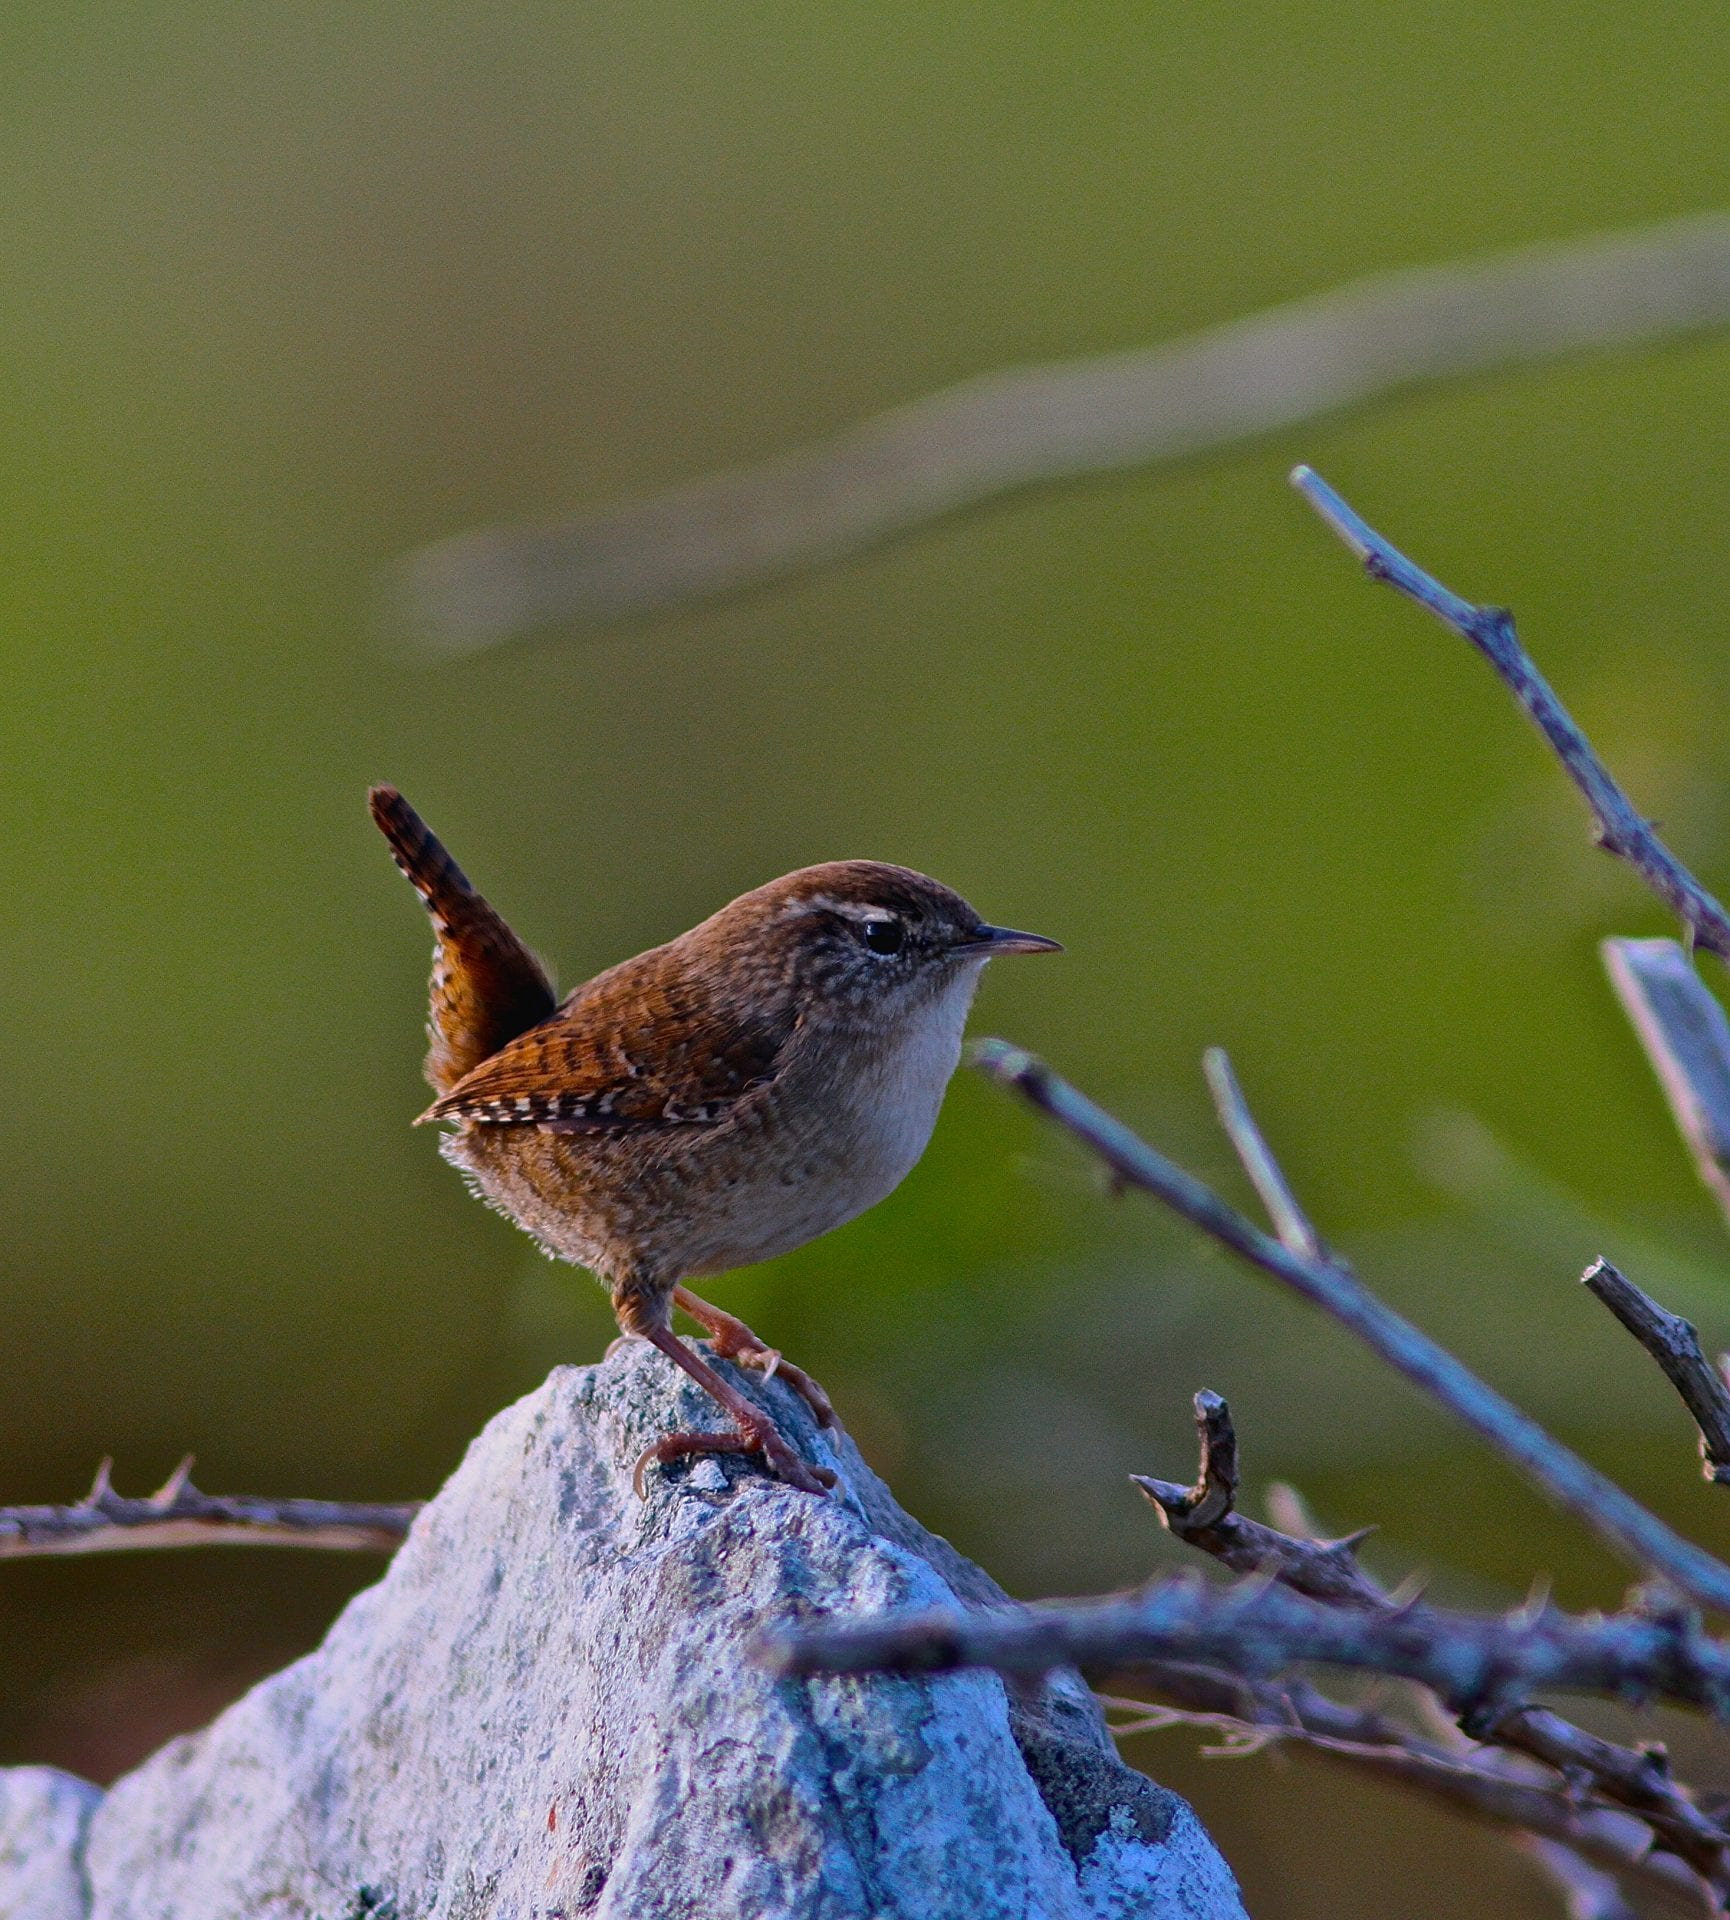 wren-perched-on-rock